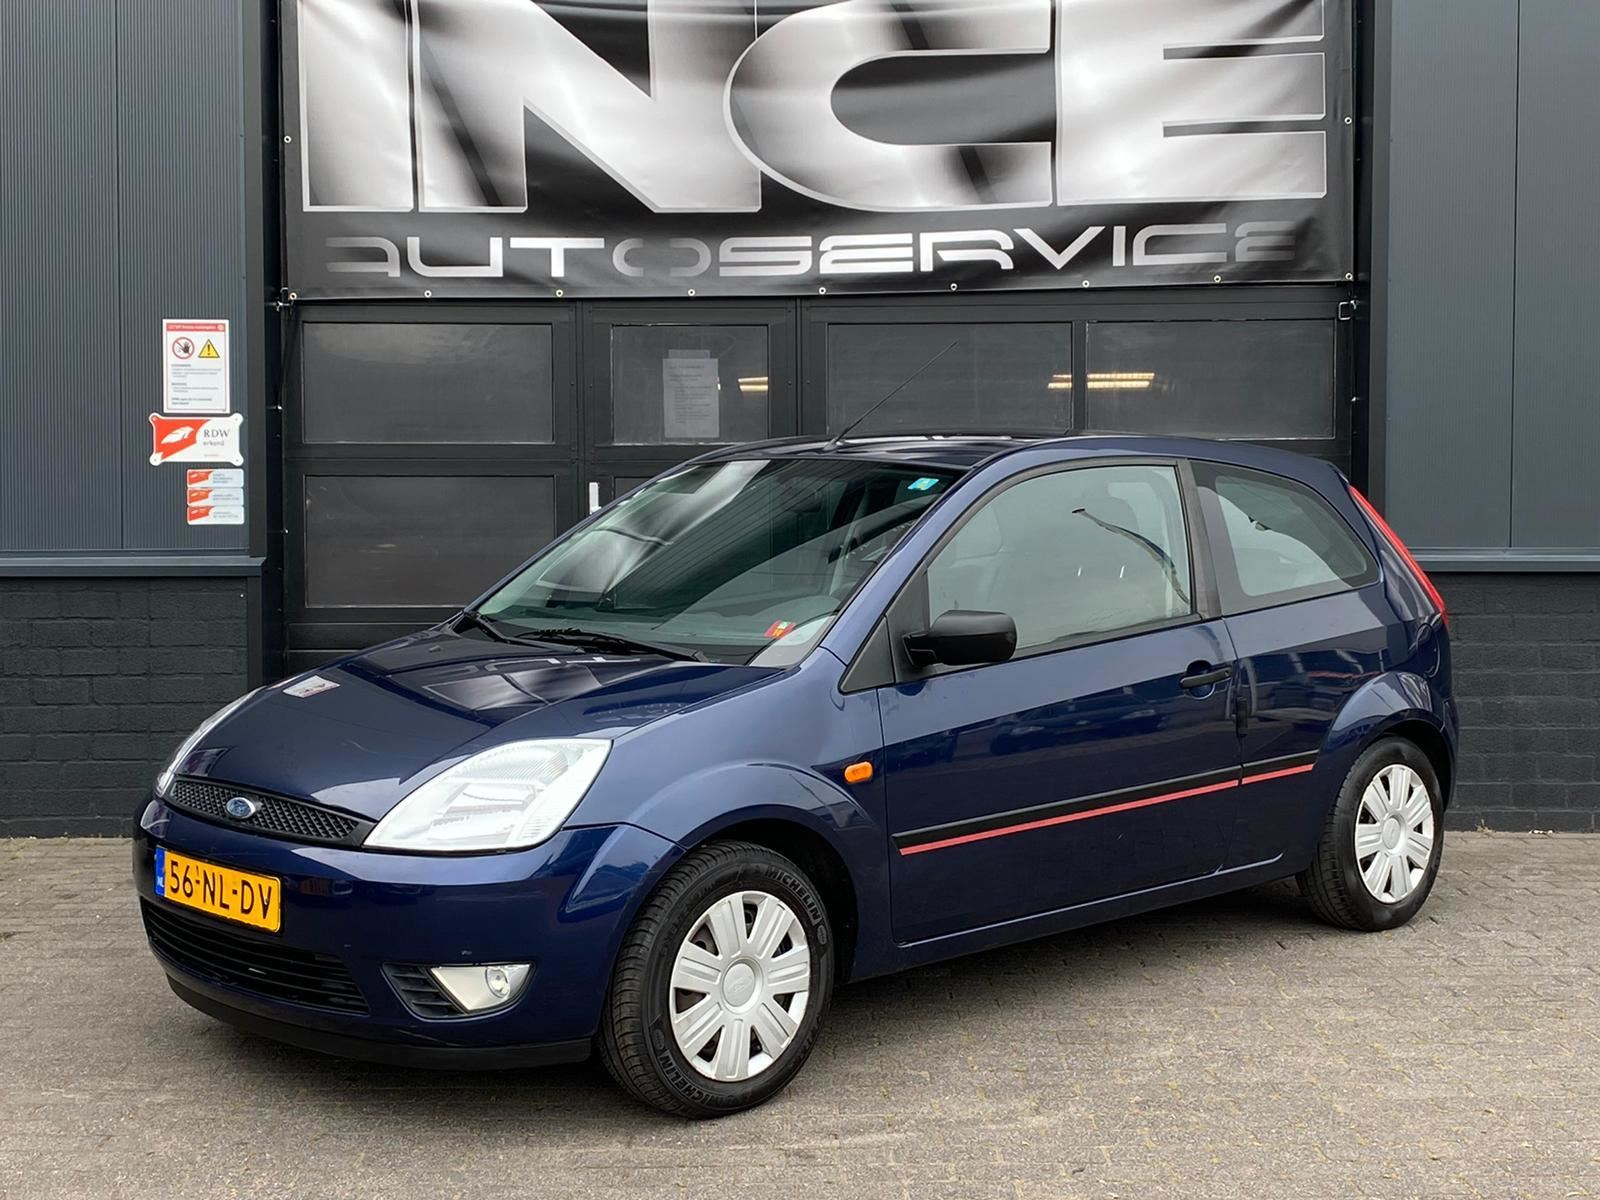 Ford Fiesta occasion - Ince Autoservice